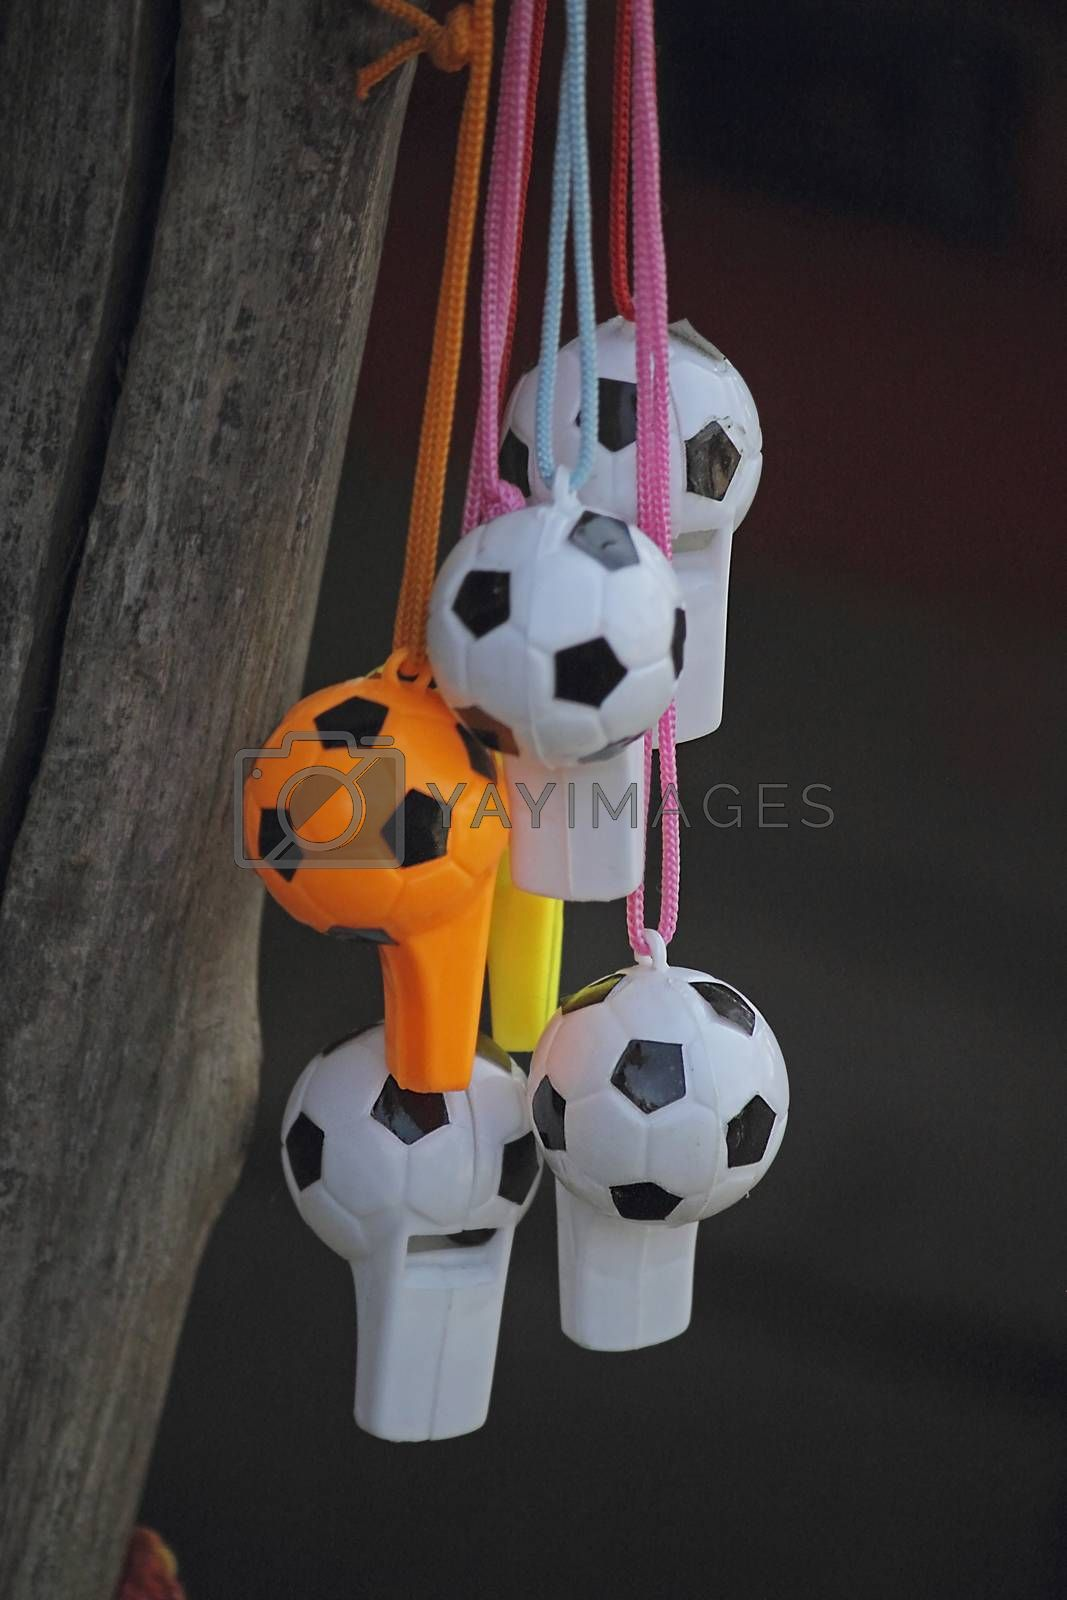 Royalty free image of whistle football shape for sale by yands